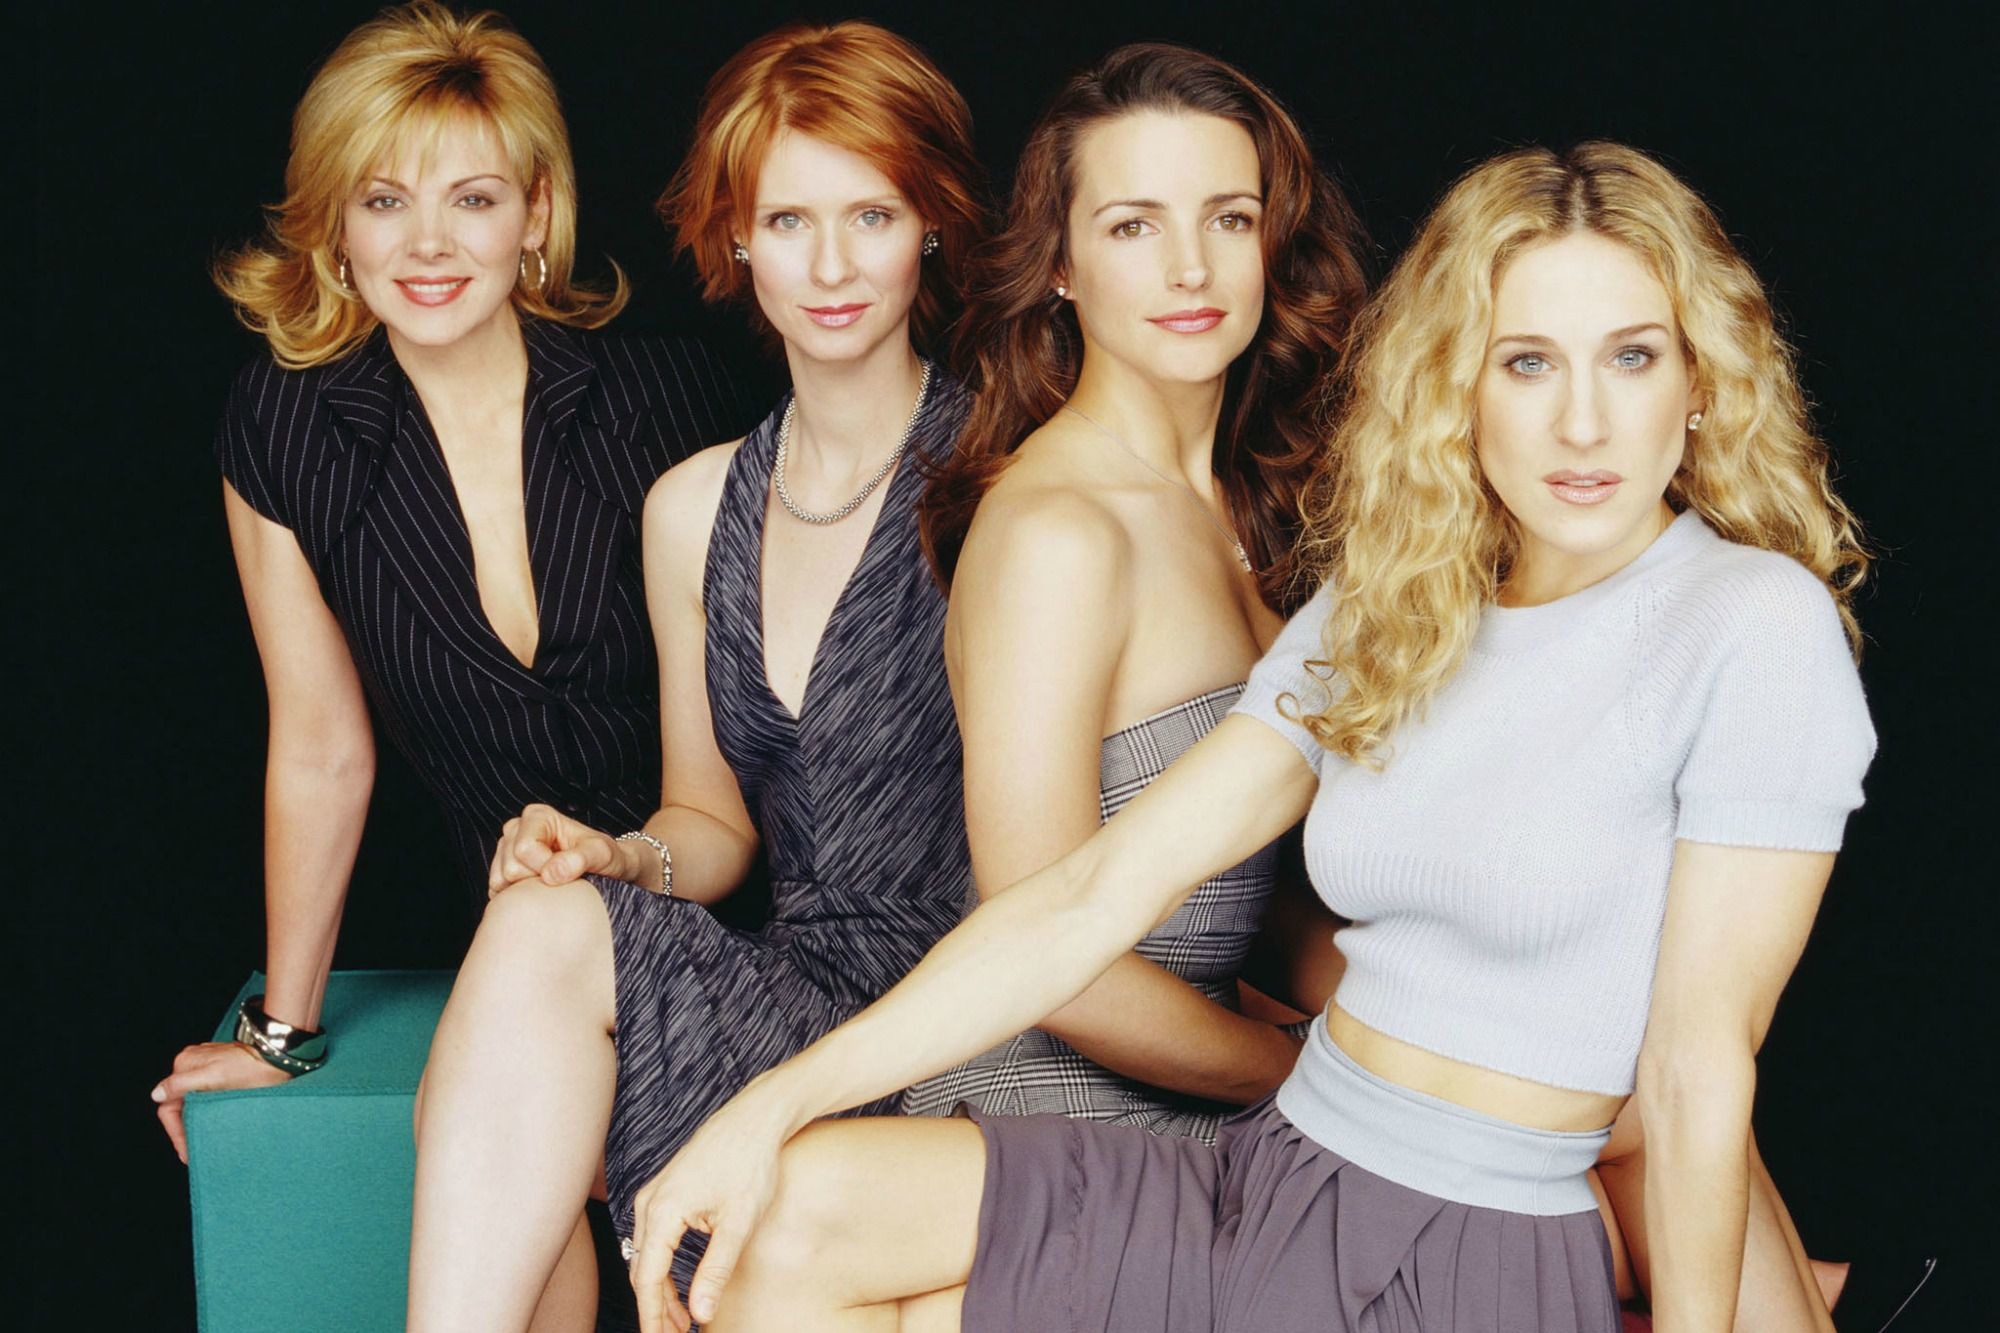 Sex and the City: Sarah Jessica Parker, Kim Cattrall, Kristin Davis e Cynthia Nixon in un'immagine promozionale